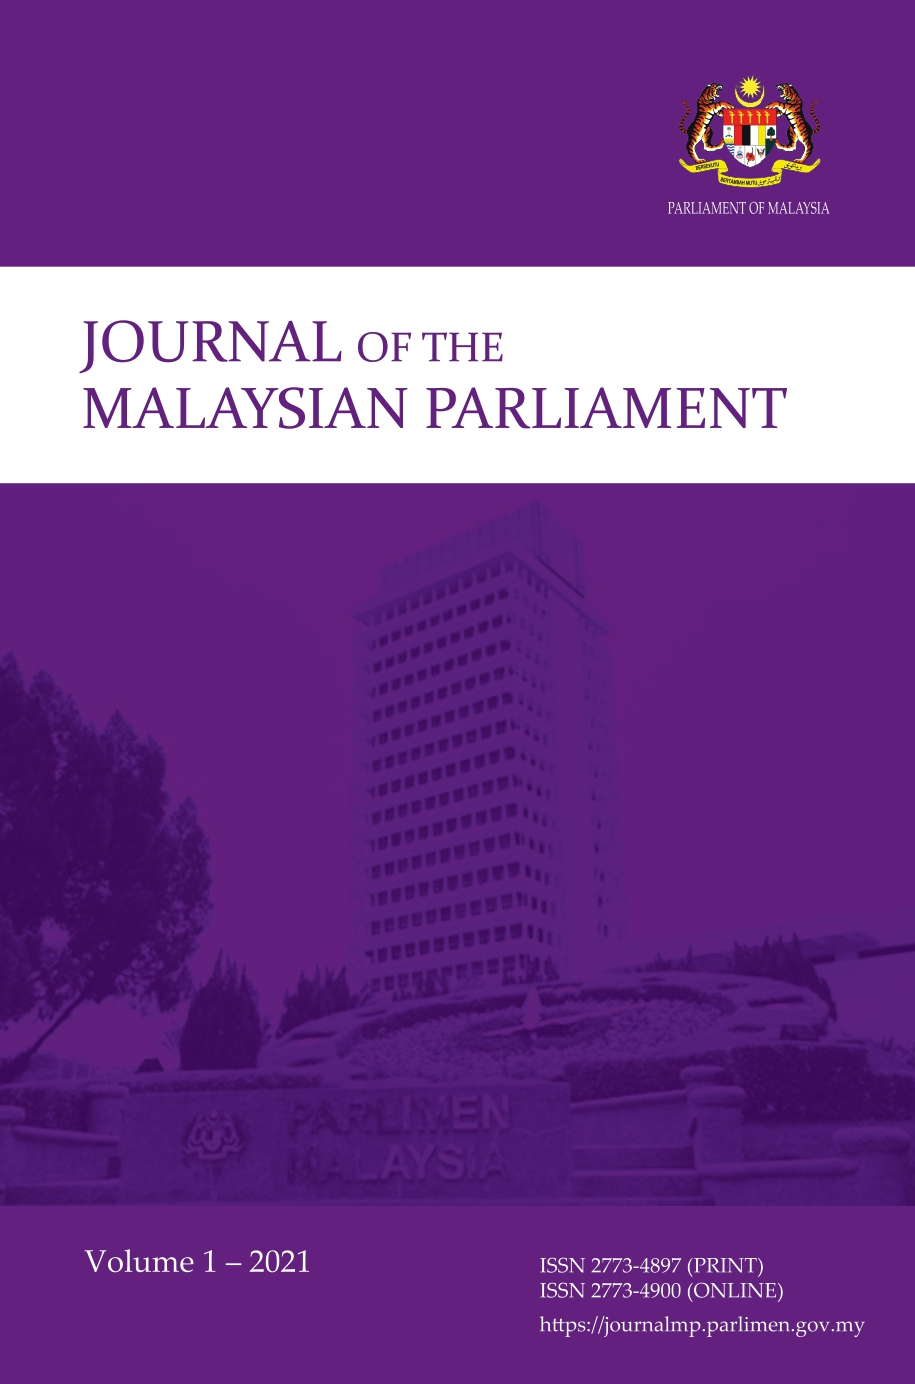 View Vol. 1 (2021): Journal of the Malaysian Parliament